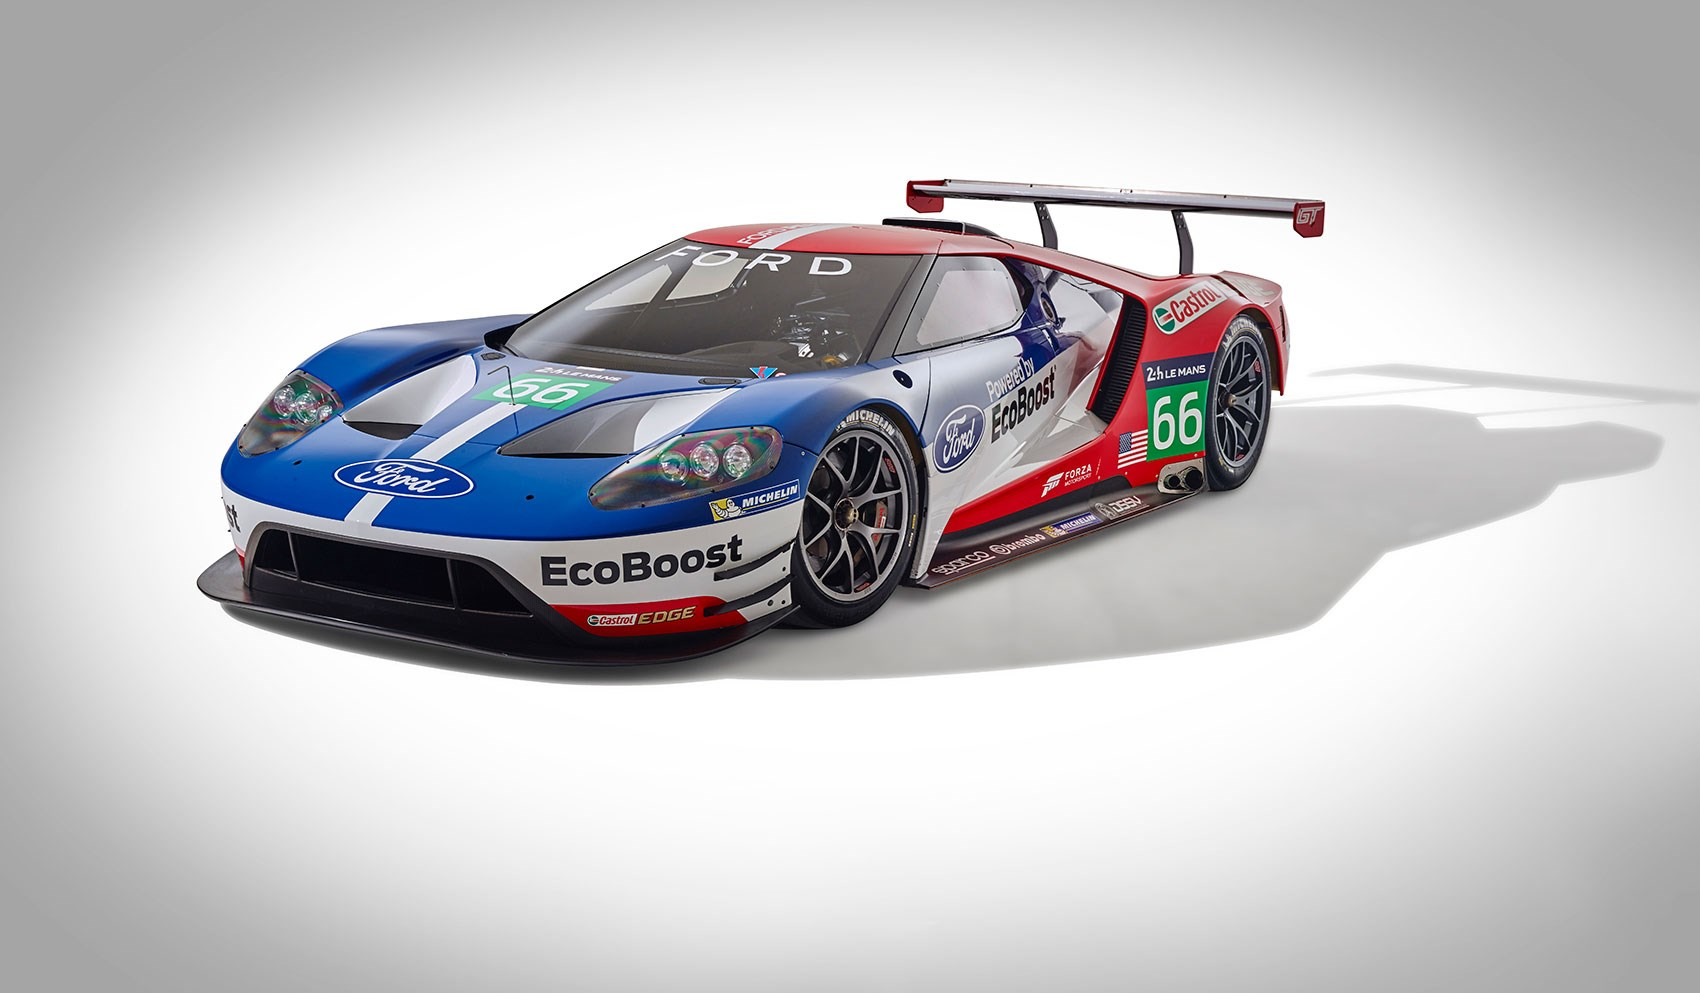 The First Official Picture Of The Ford Gt Endurance Race Car